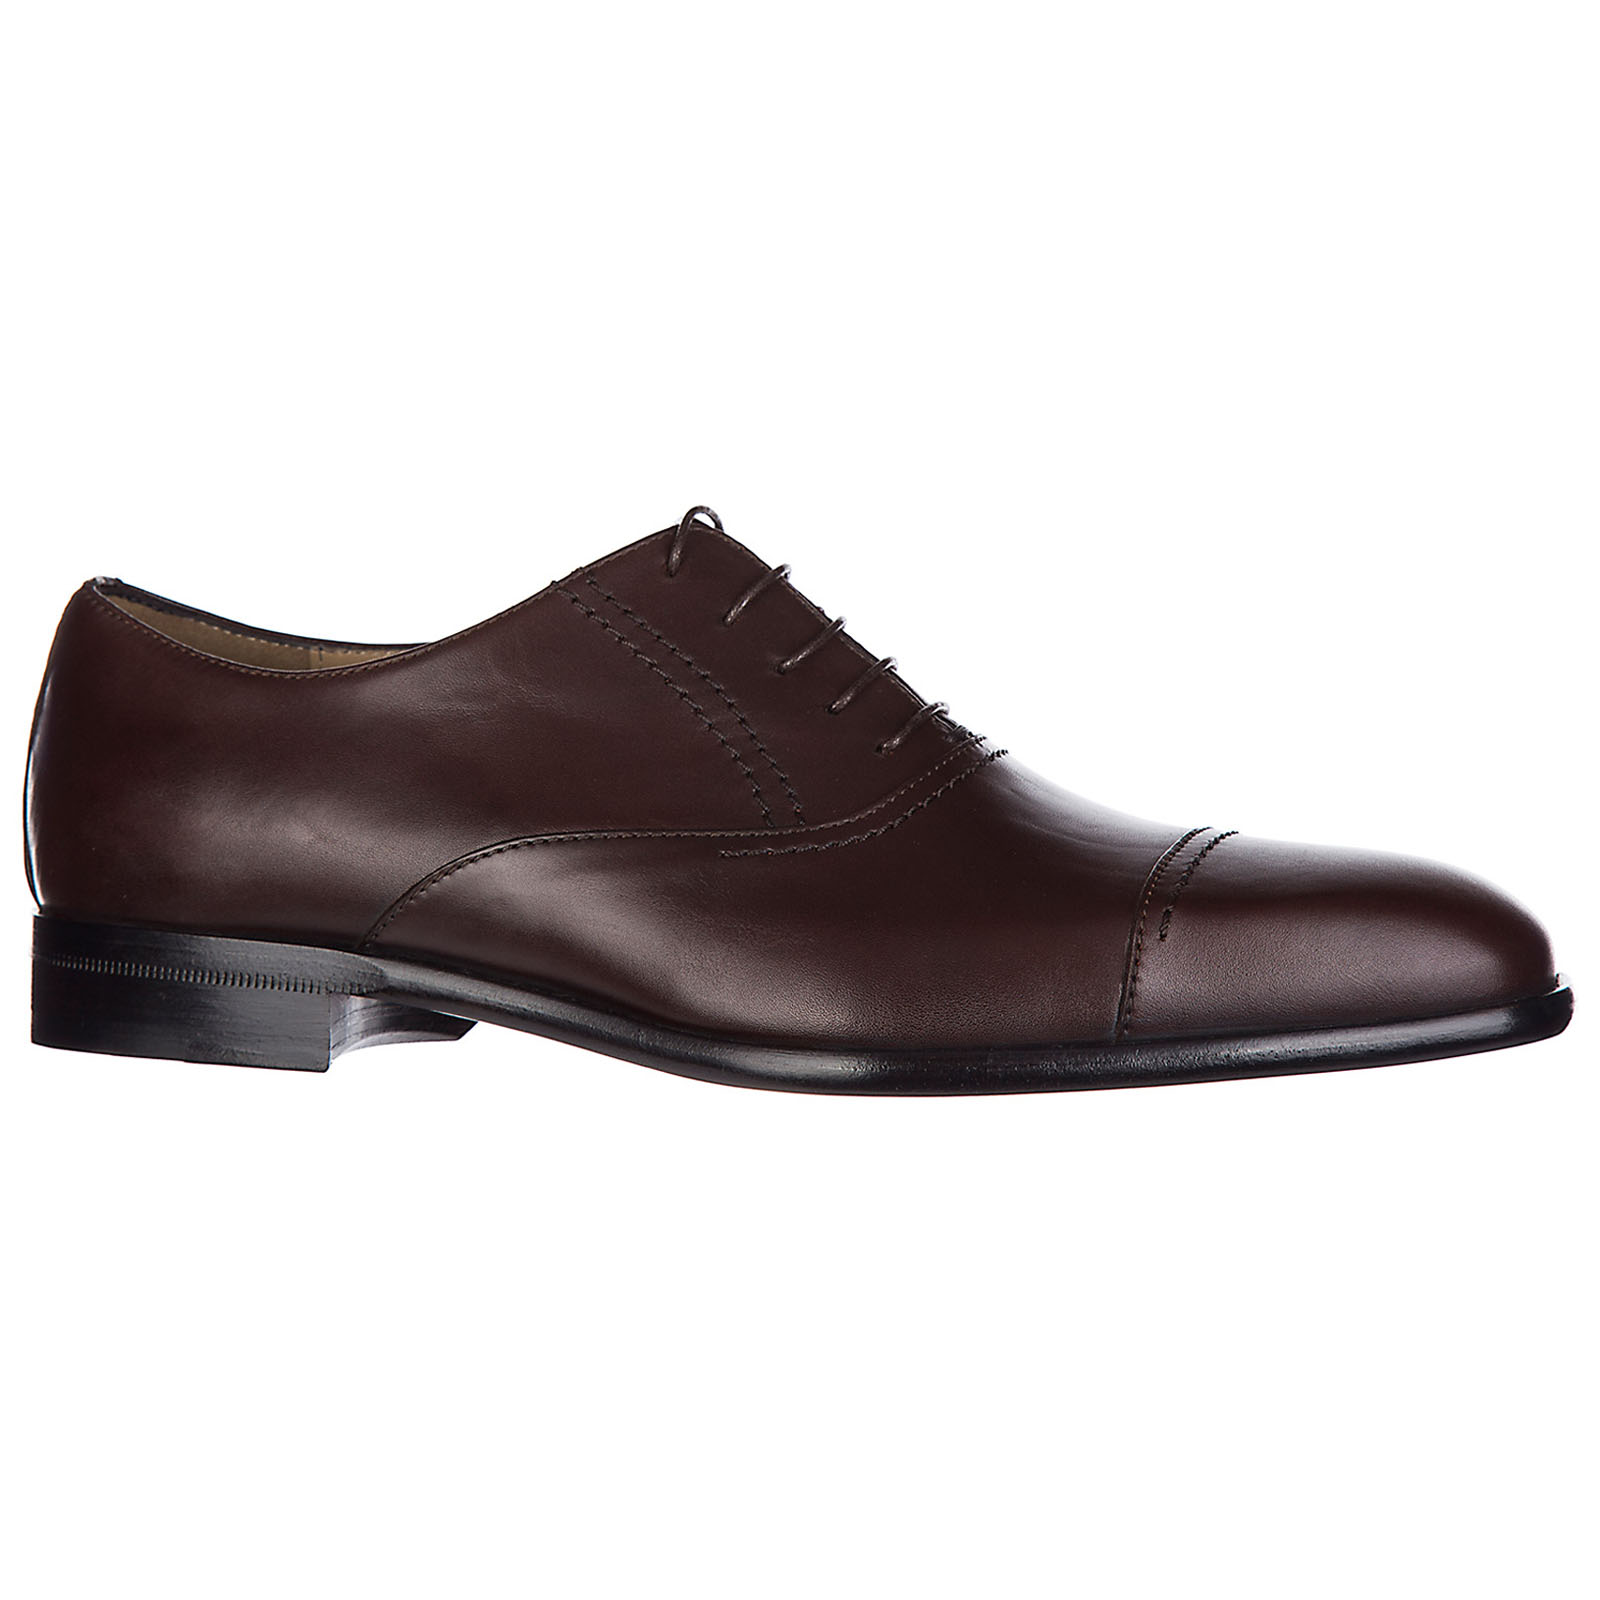 Men's classic leather lace up laced formal shoes oxford